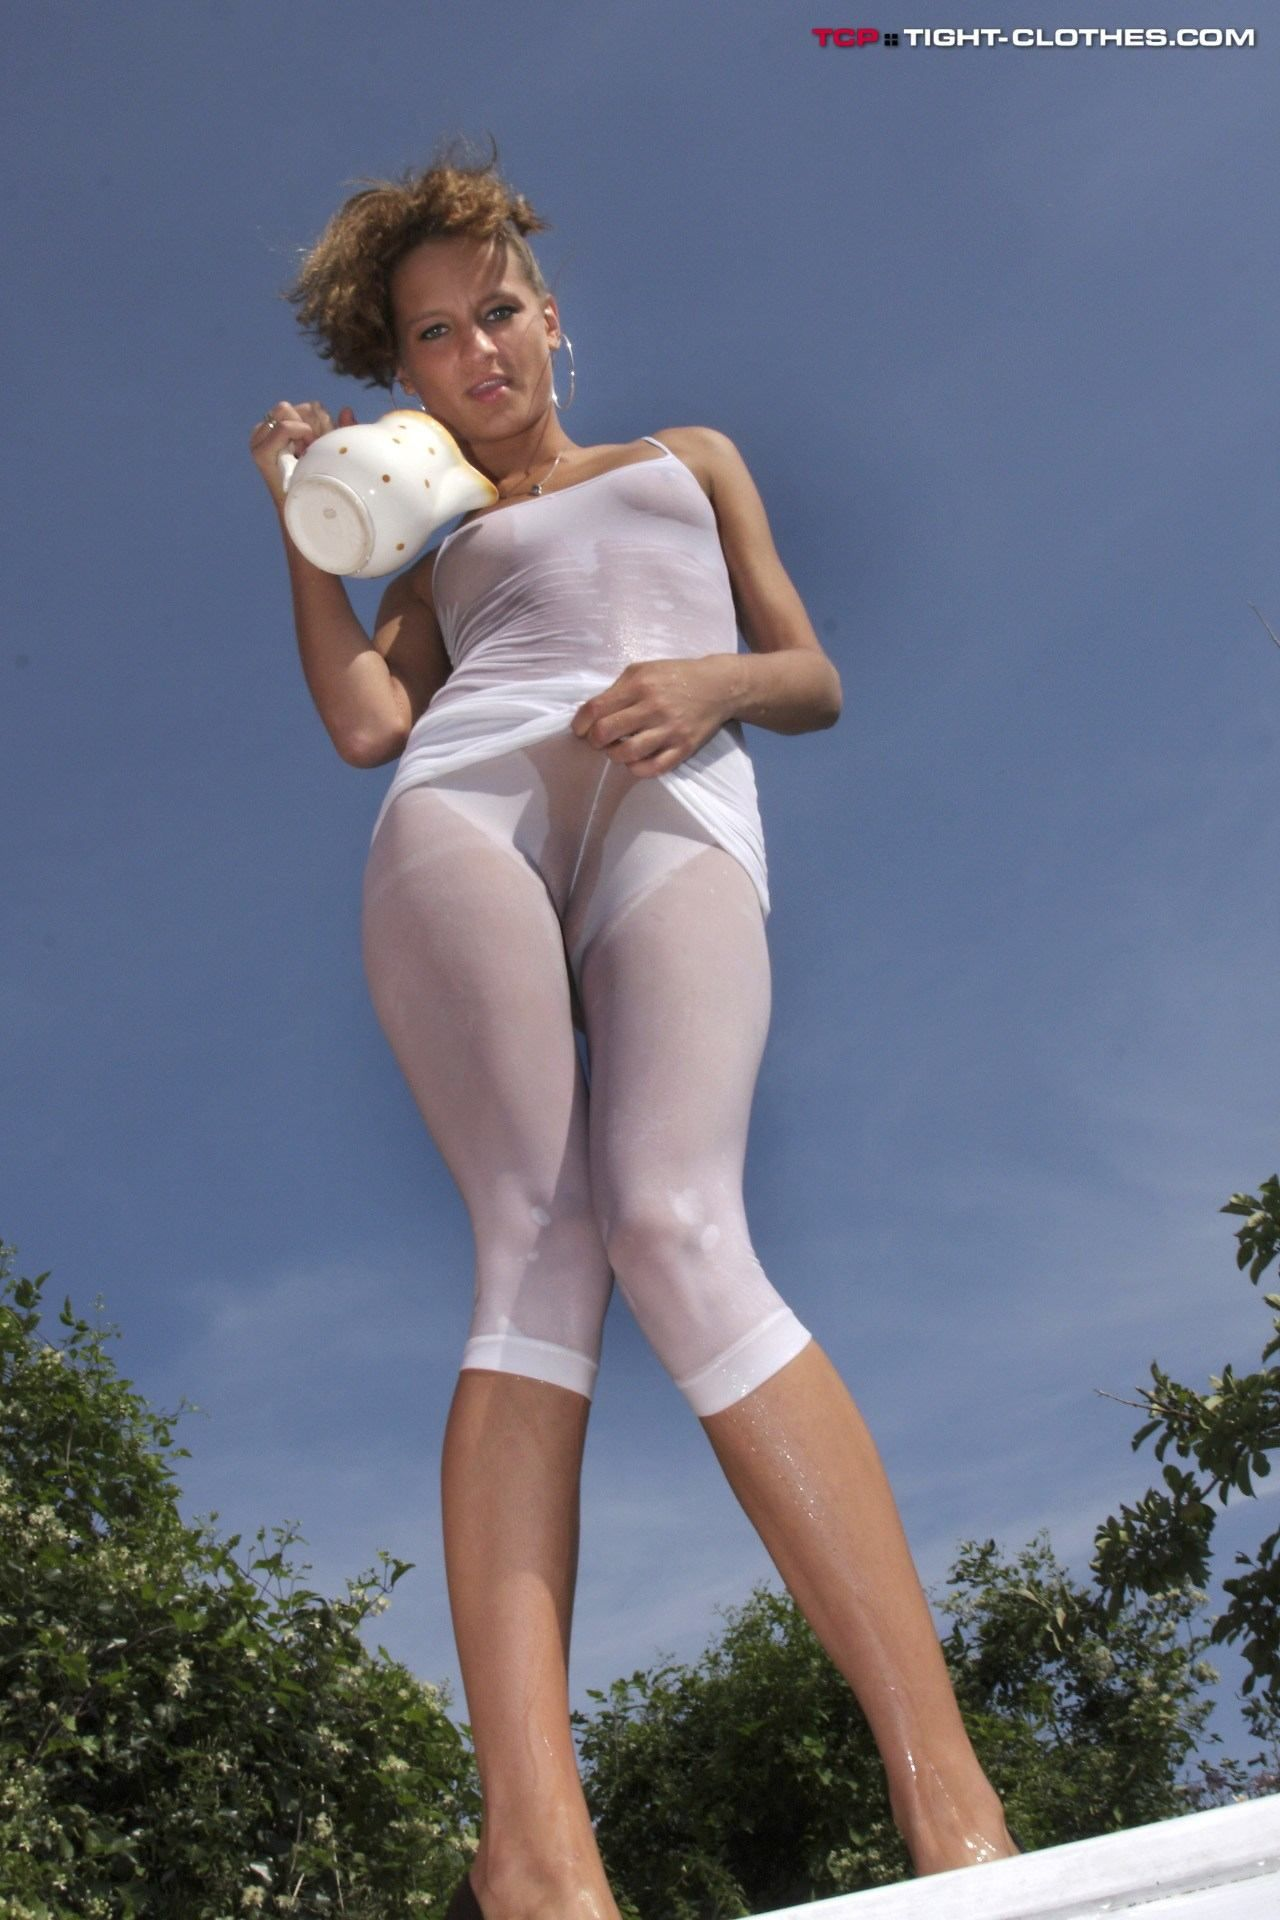 tight wet clothes porn